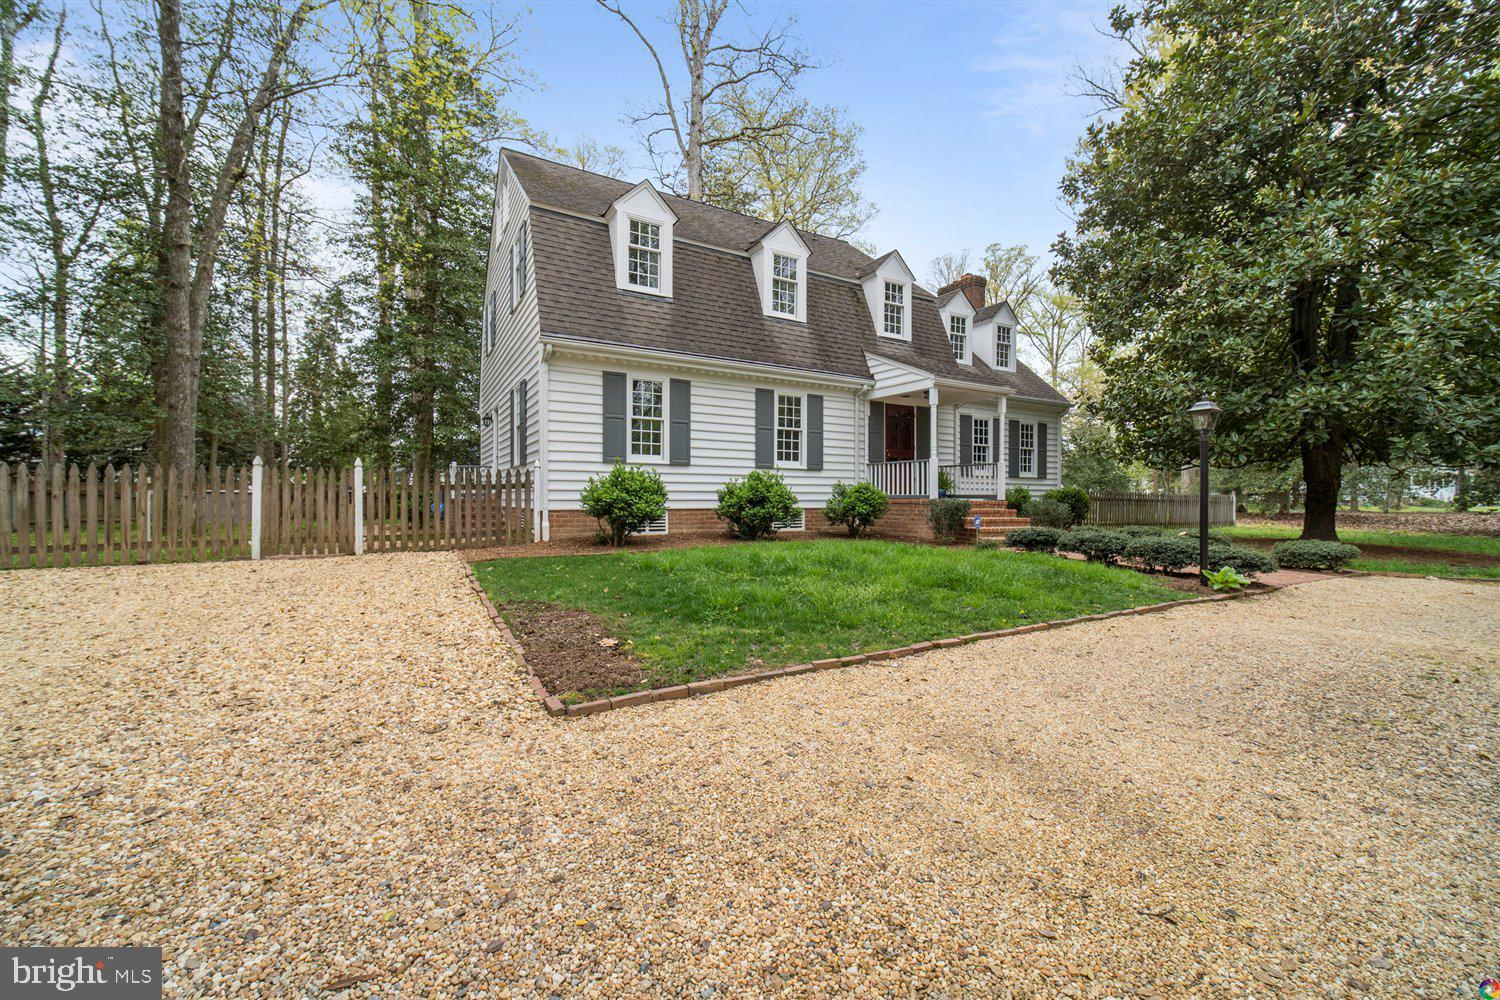 This is a rare opportunity to purchase a one-owner Beautifully Maintained Custom Built Williamsburg